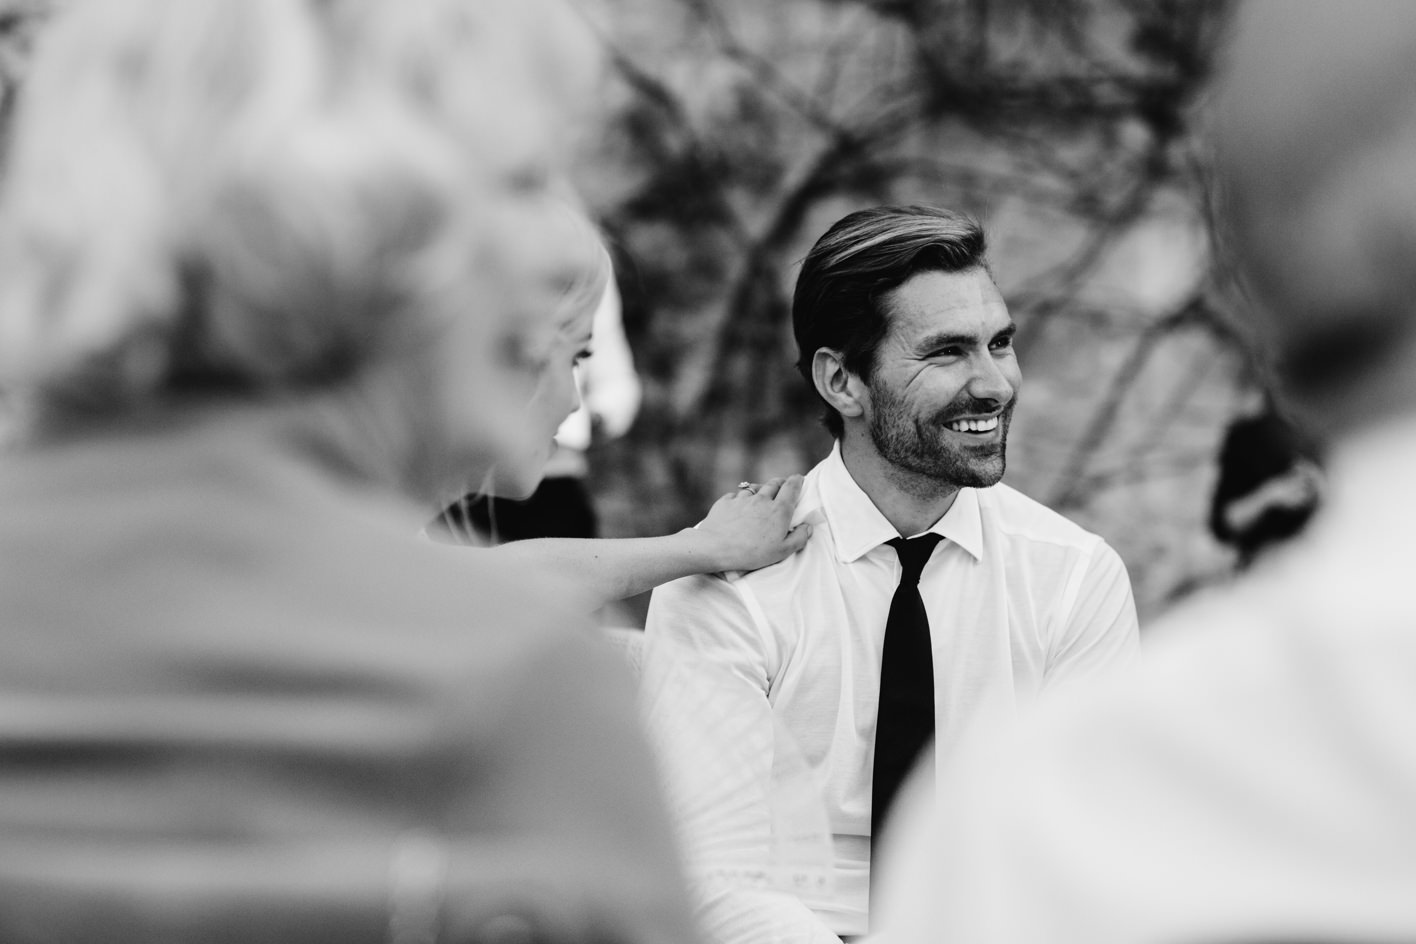 groom gets a hand of support during speech